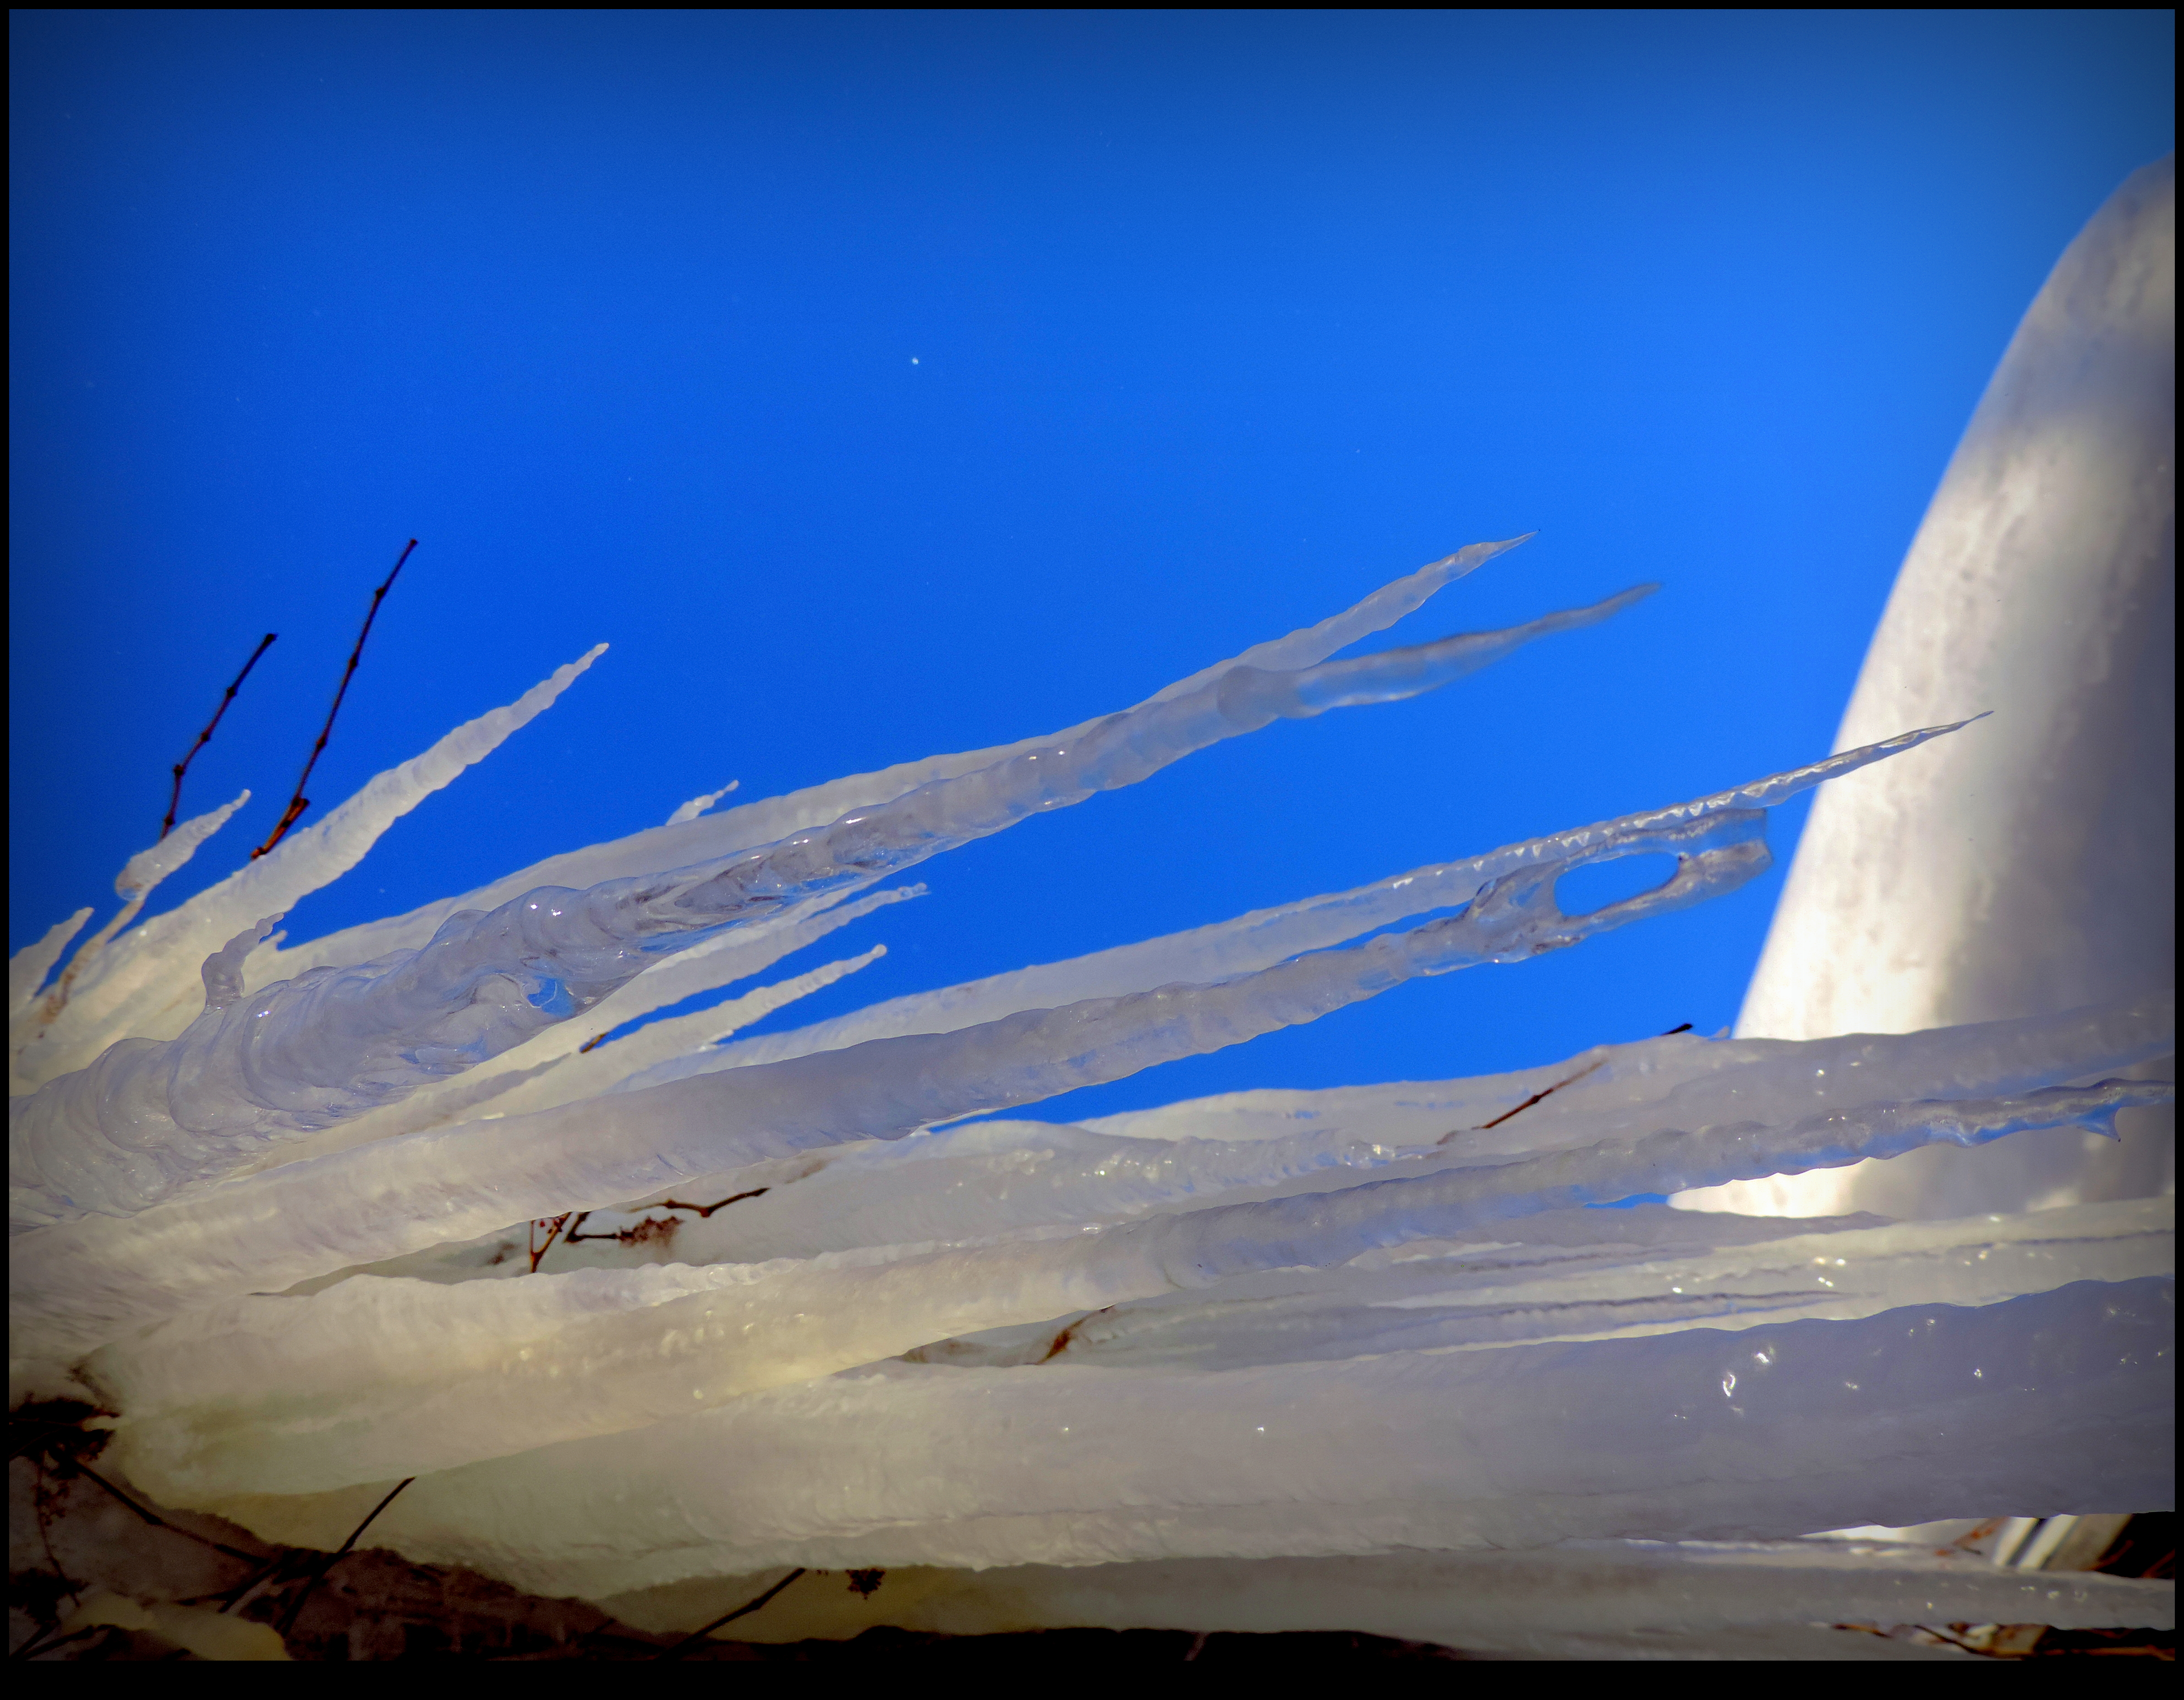 Icicles From Below by JocelyneR